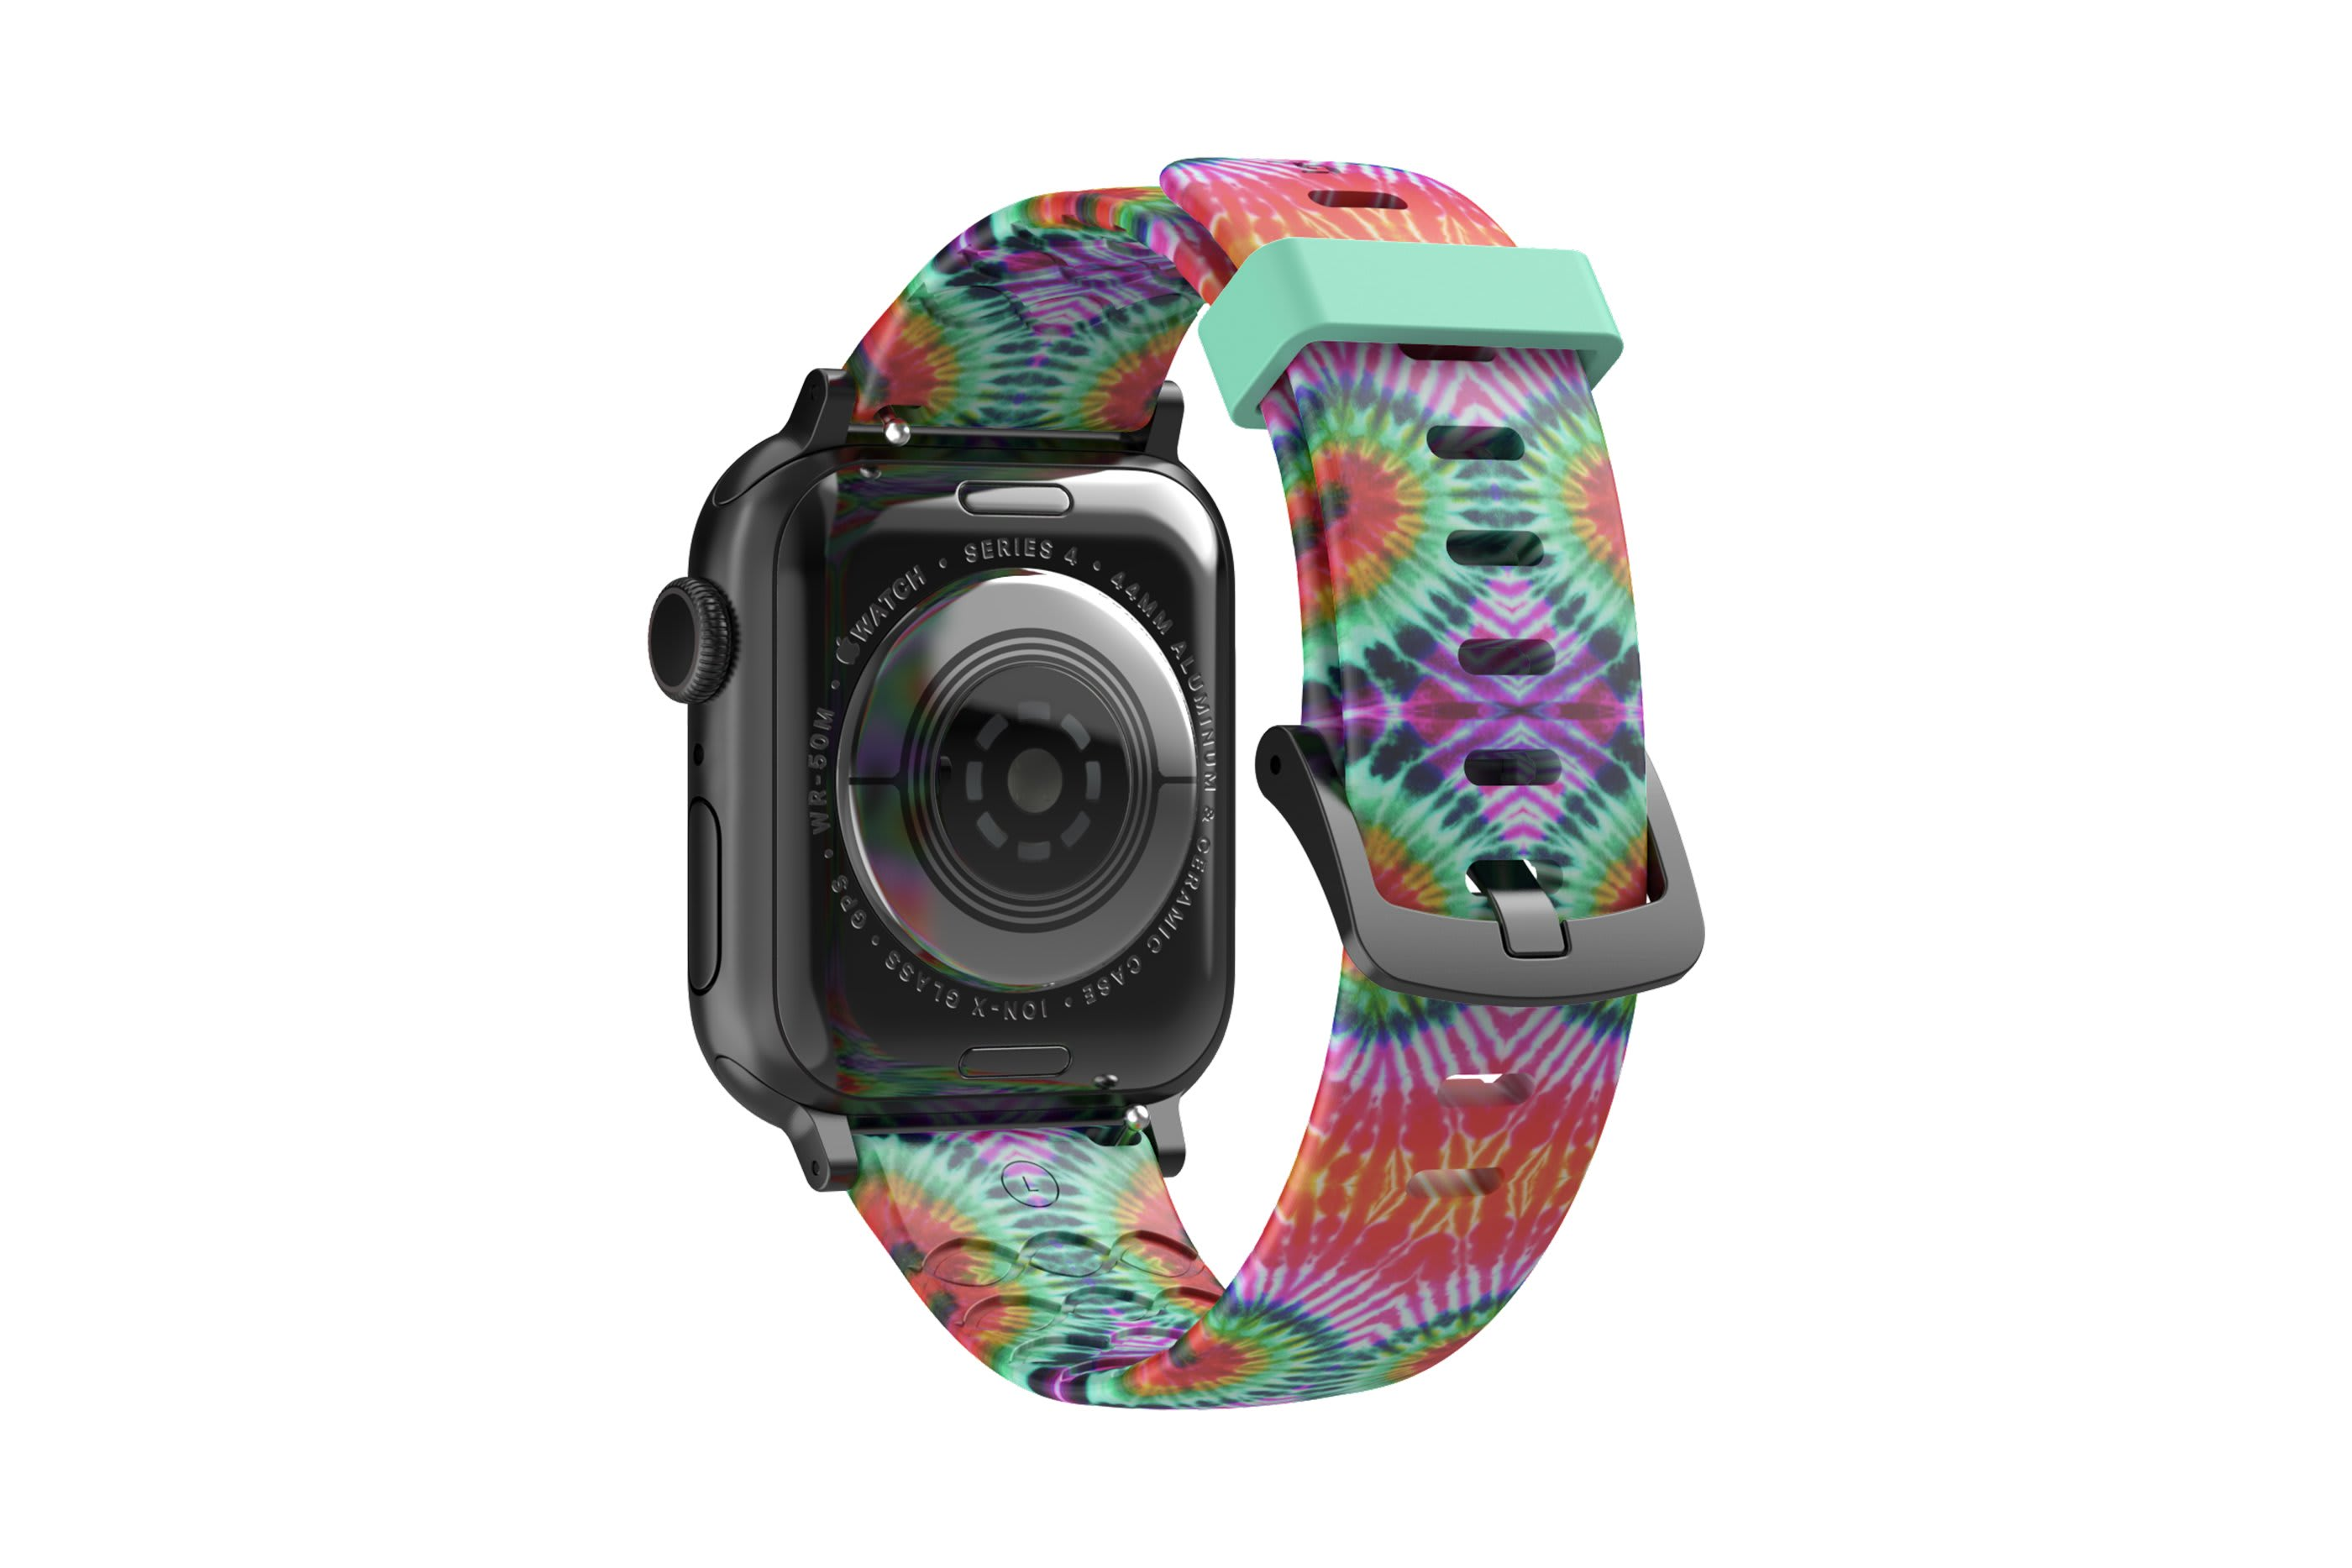 Gypsy Eyes  apple watch band with gray hardware viewed from top down